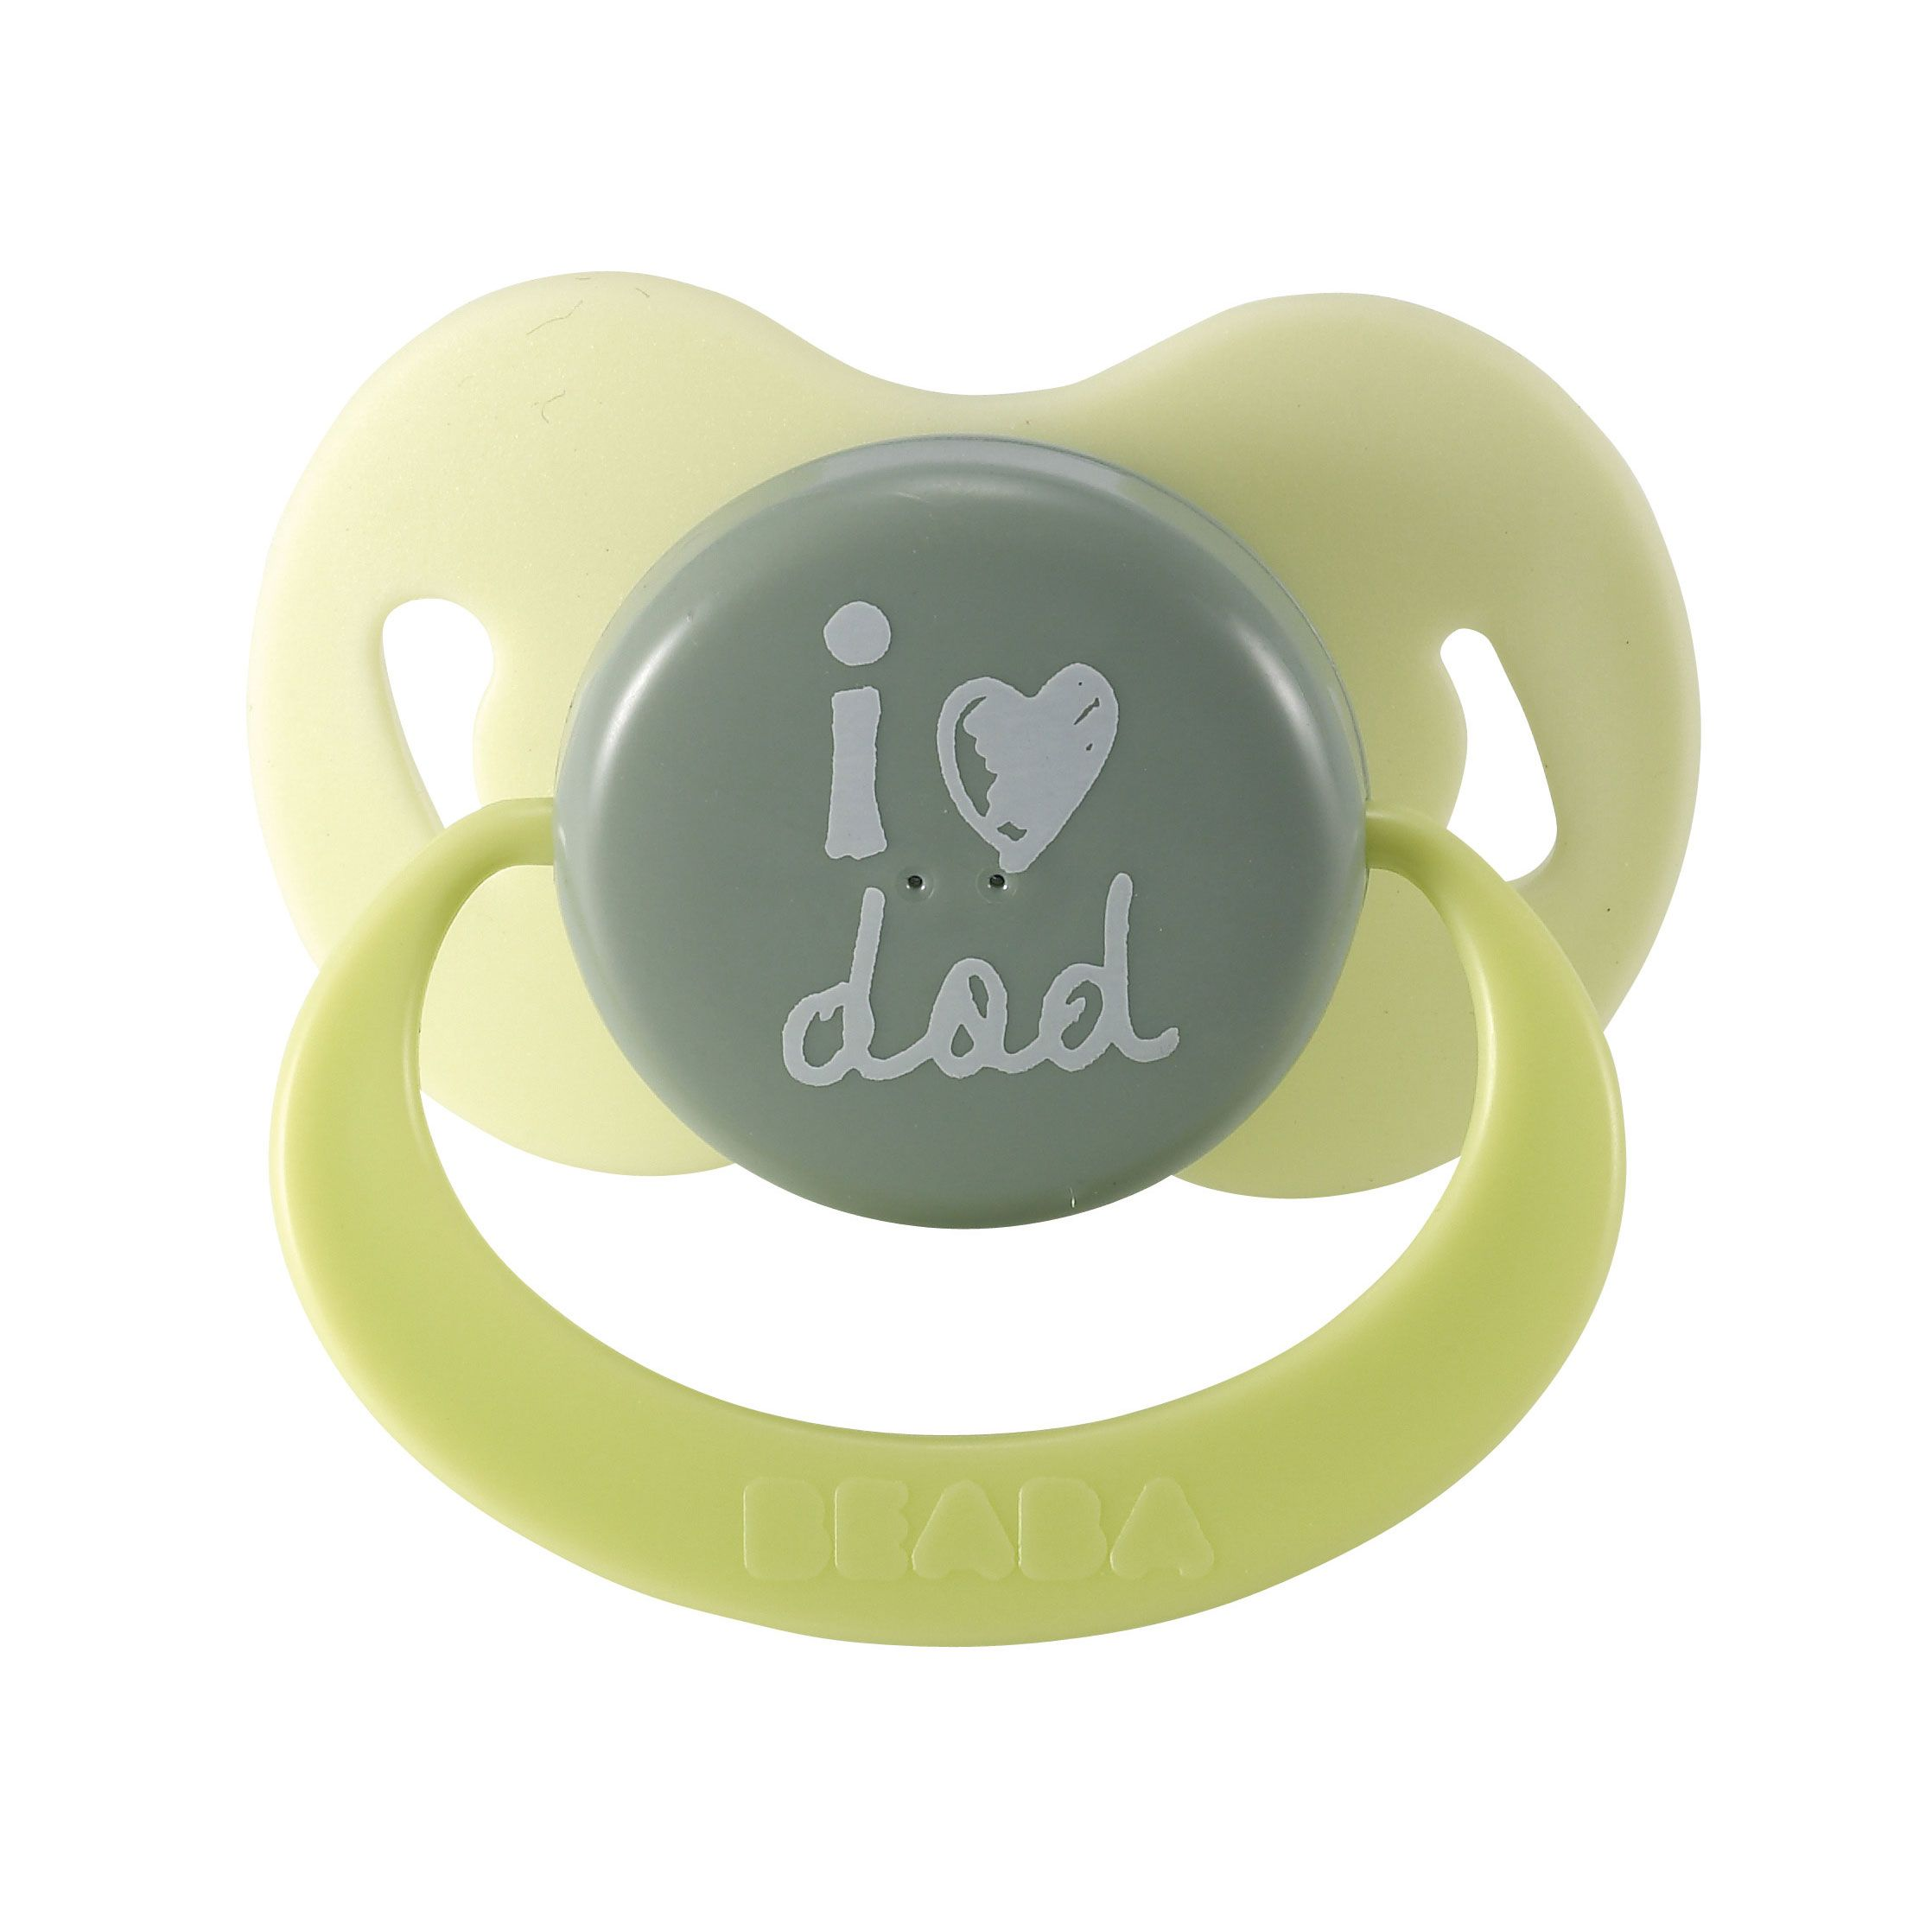 SUCETTE LOVE DAD BEABA